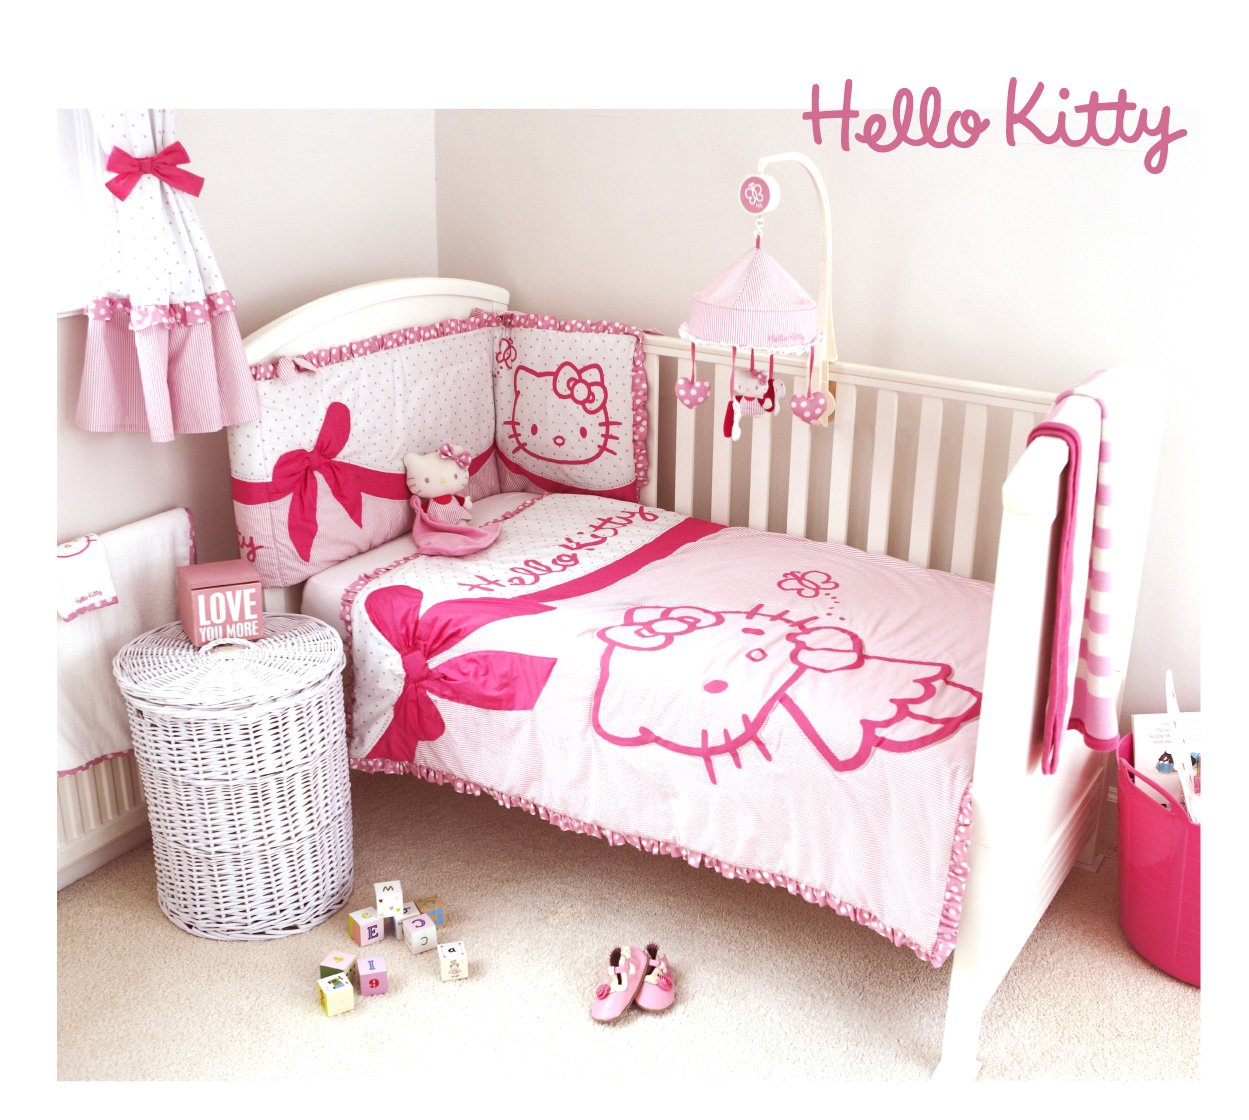 Couette Grande Dimension Parure Lit Hello Kitty